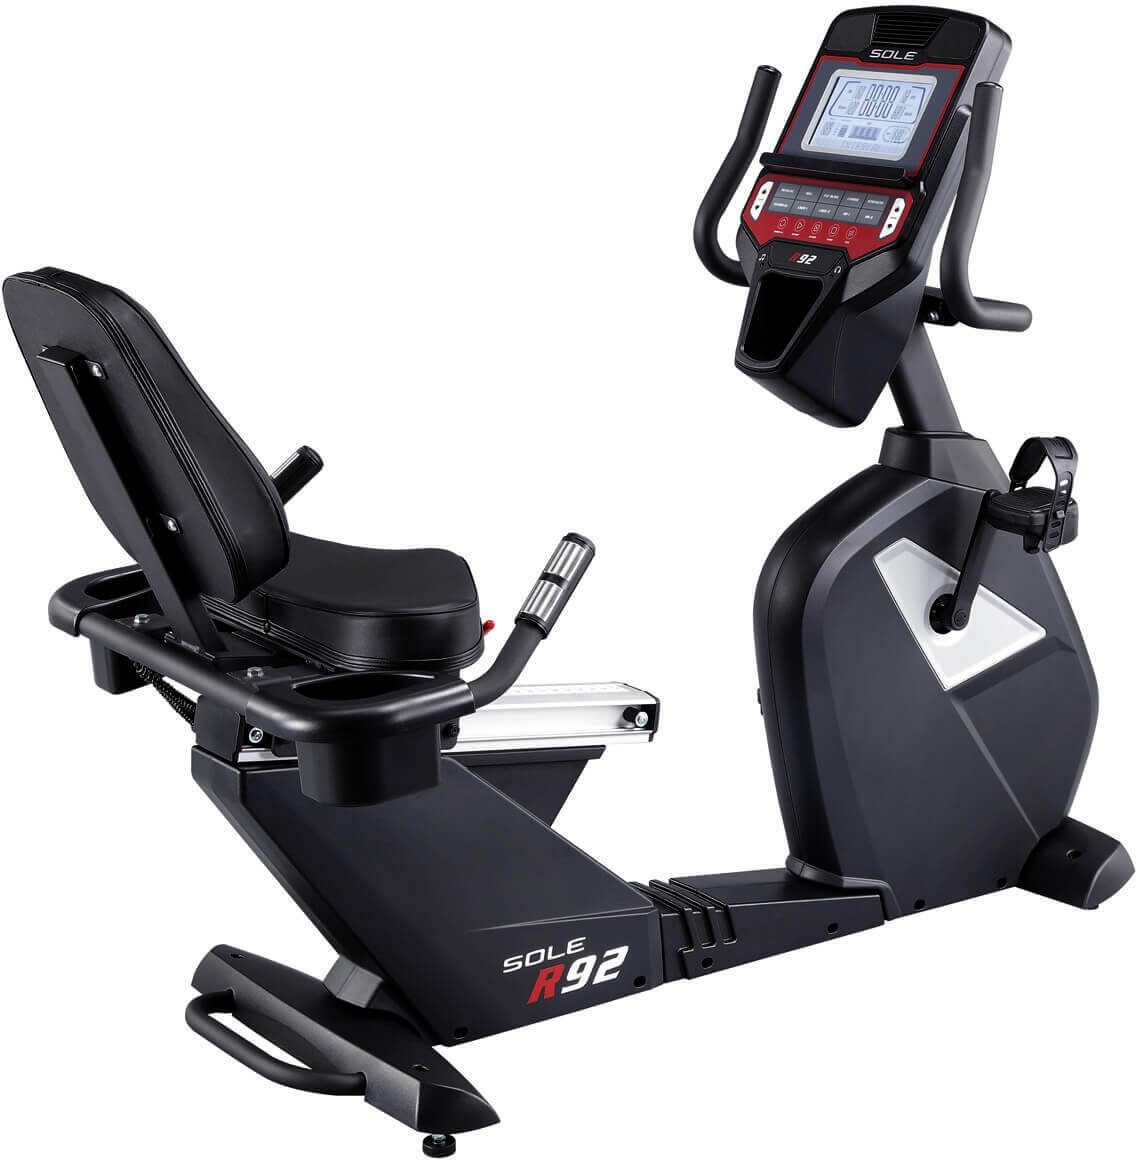 Sitz-Heimtrainer, »R92 Recumbent Bike«, Sole by Hammer